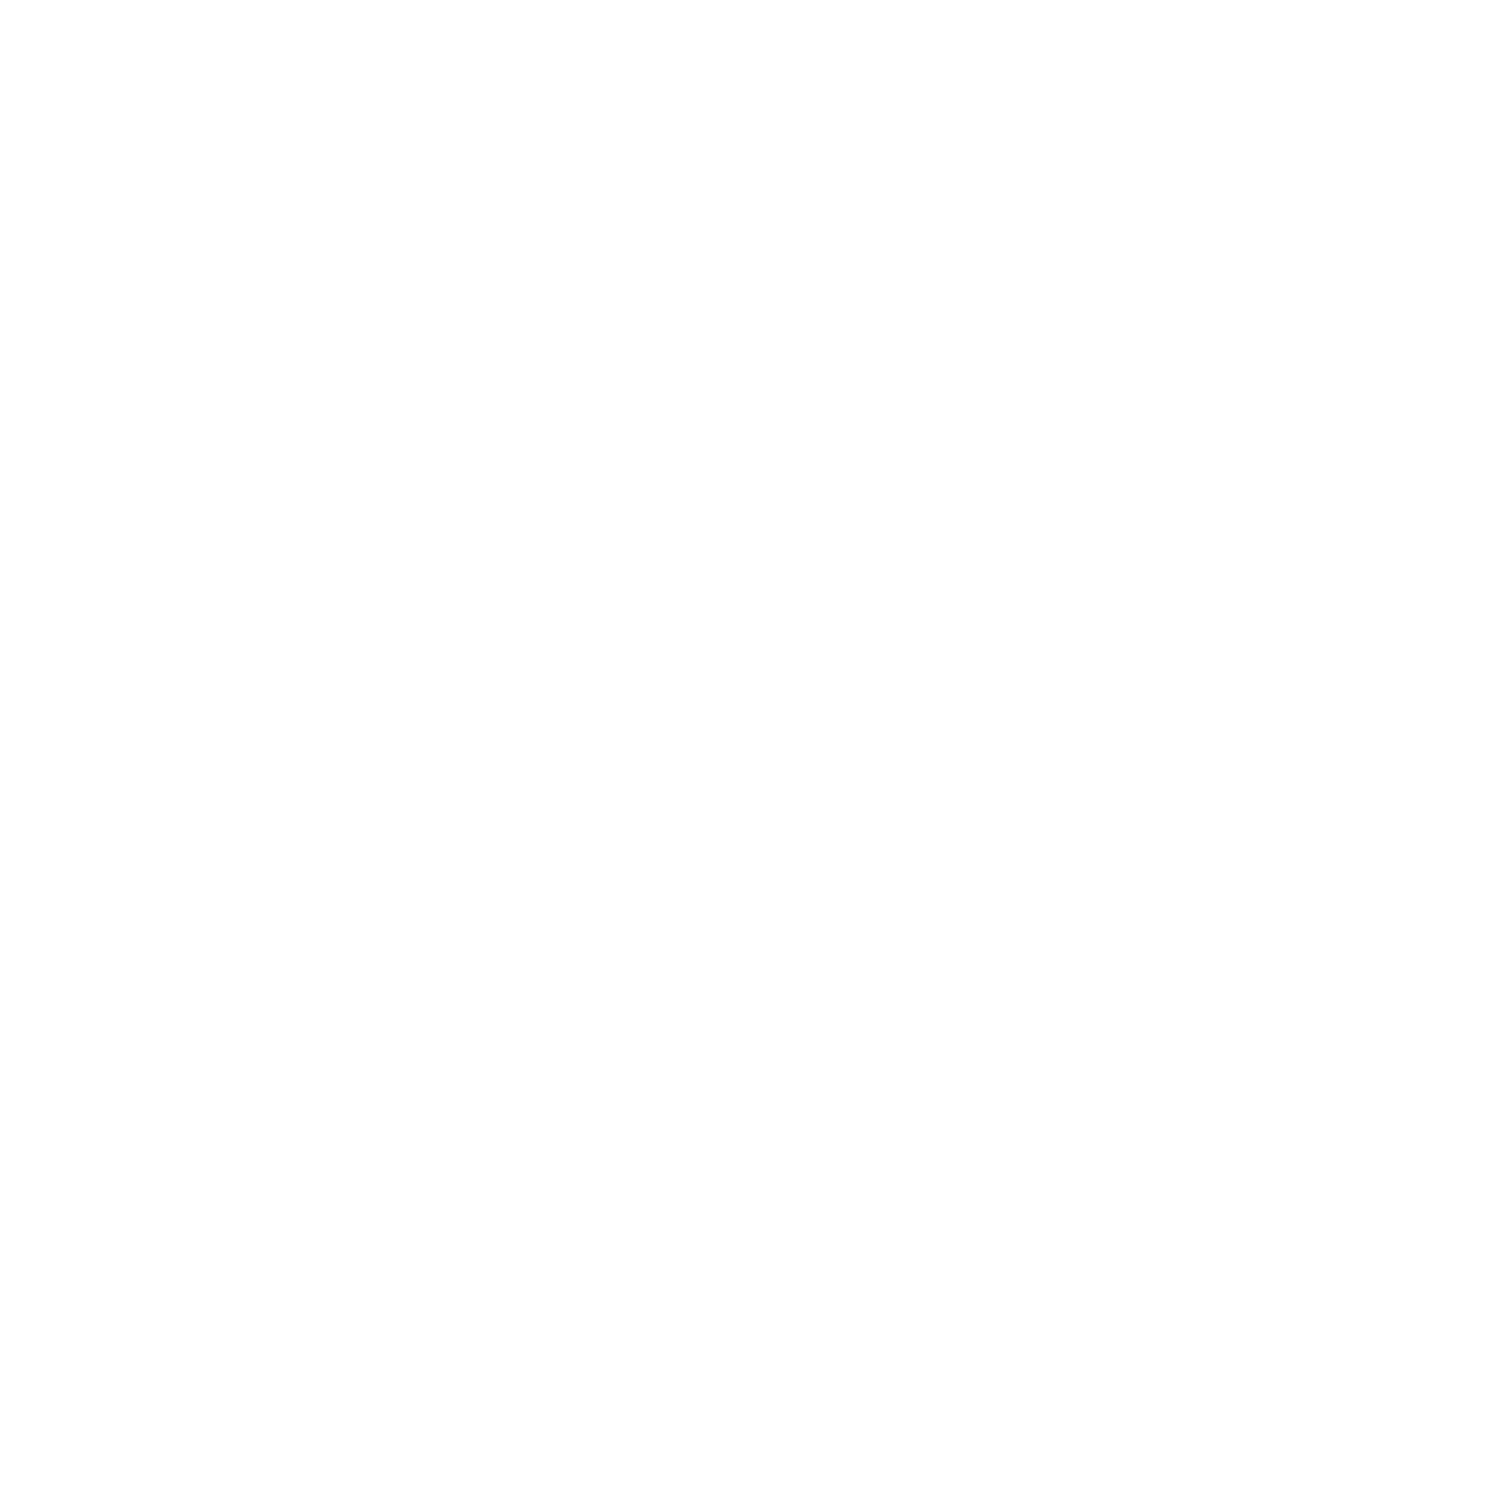 CROOKED SPIES